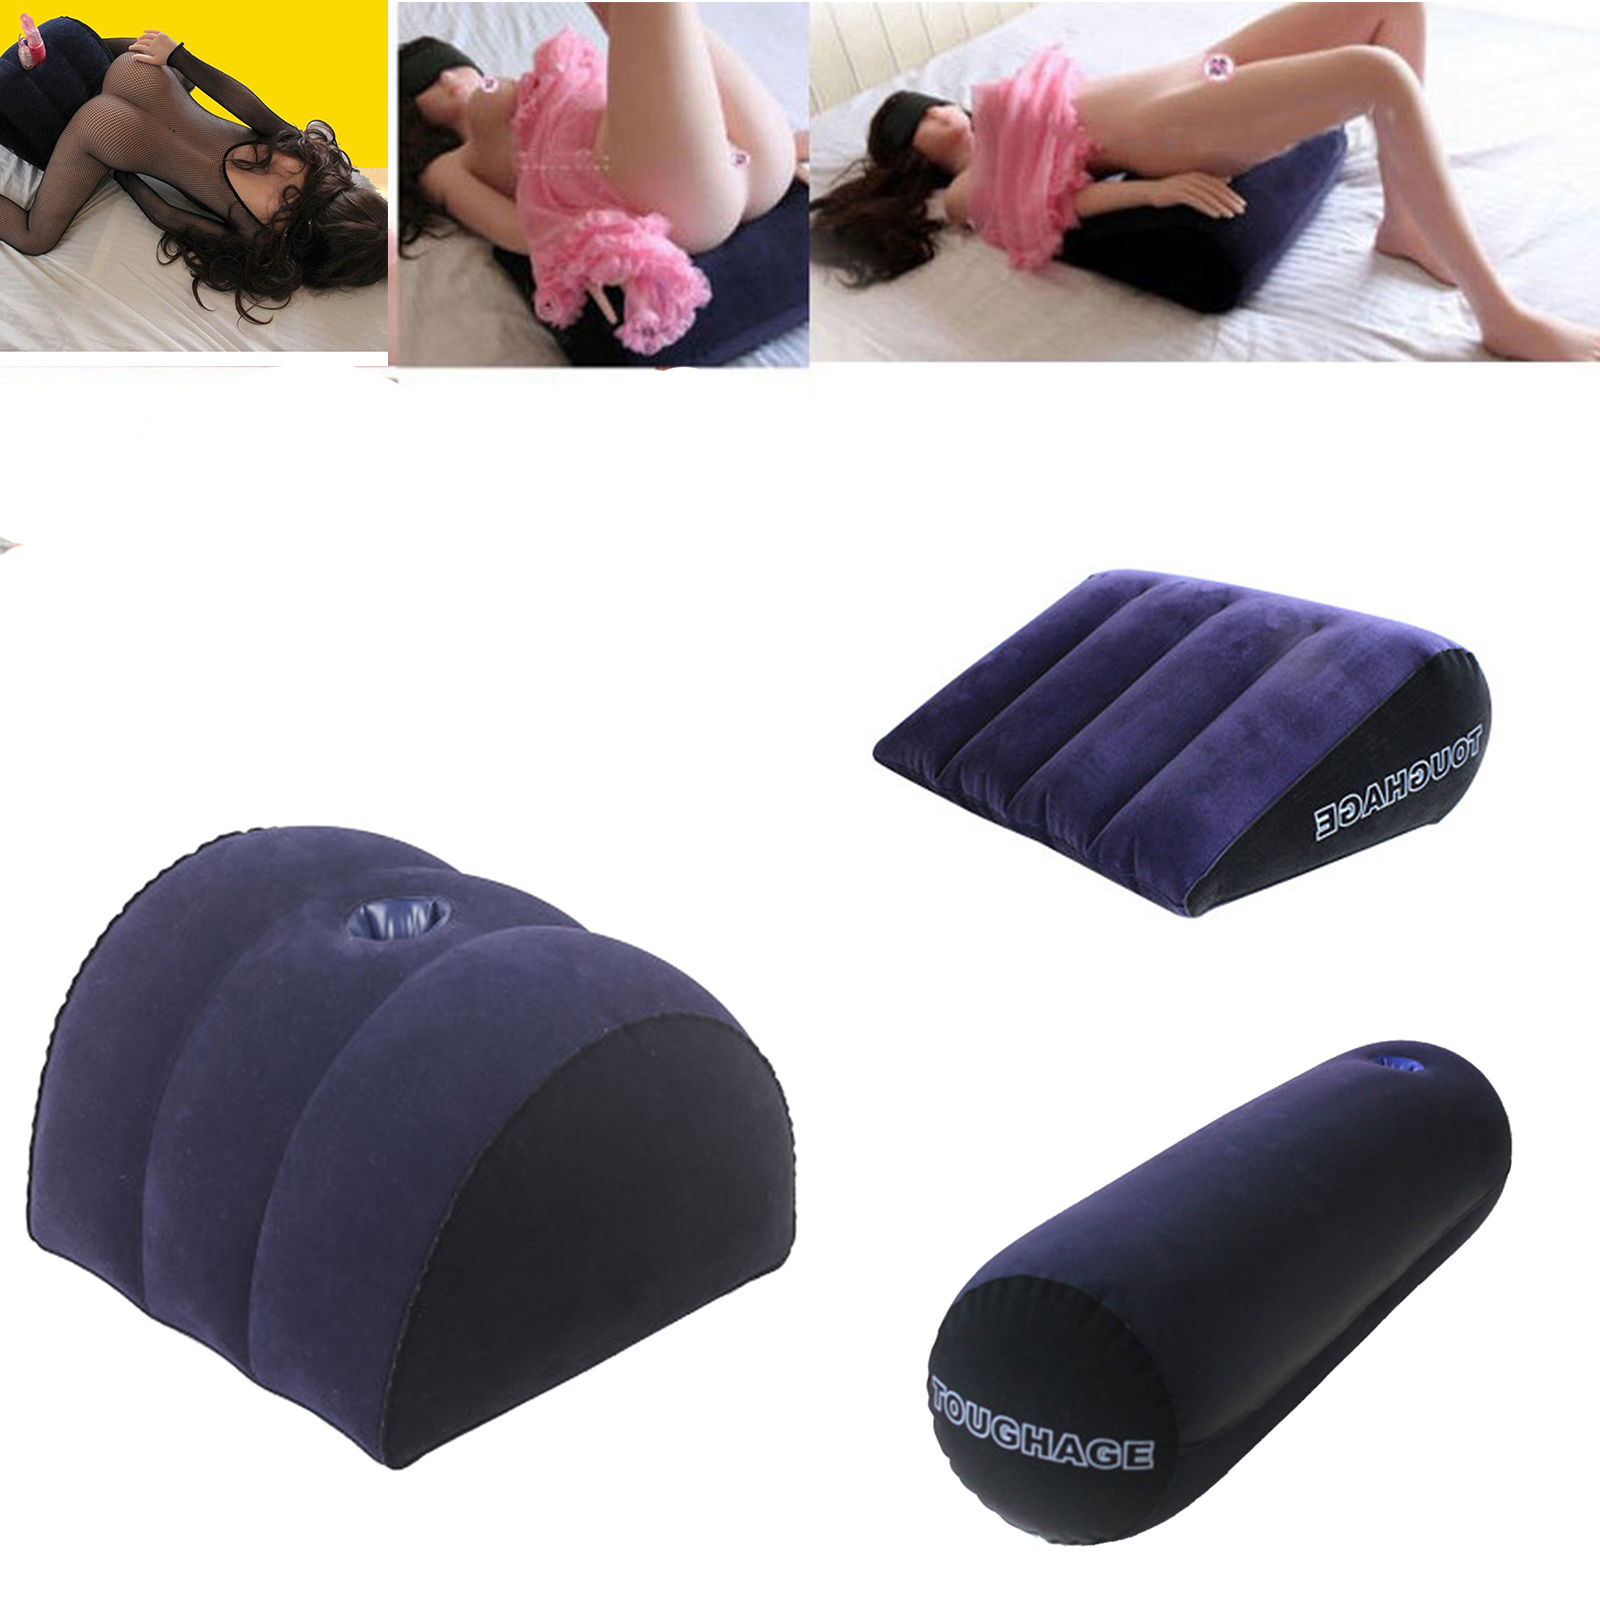 Wedge cushion for sex